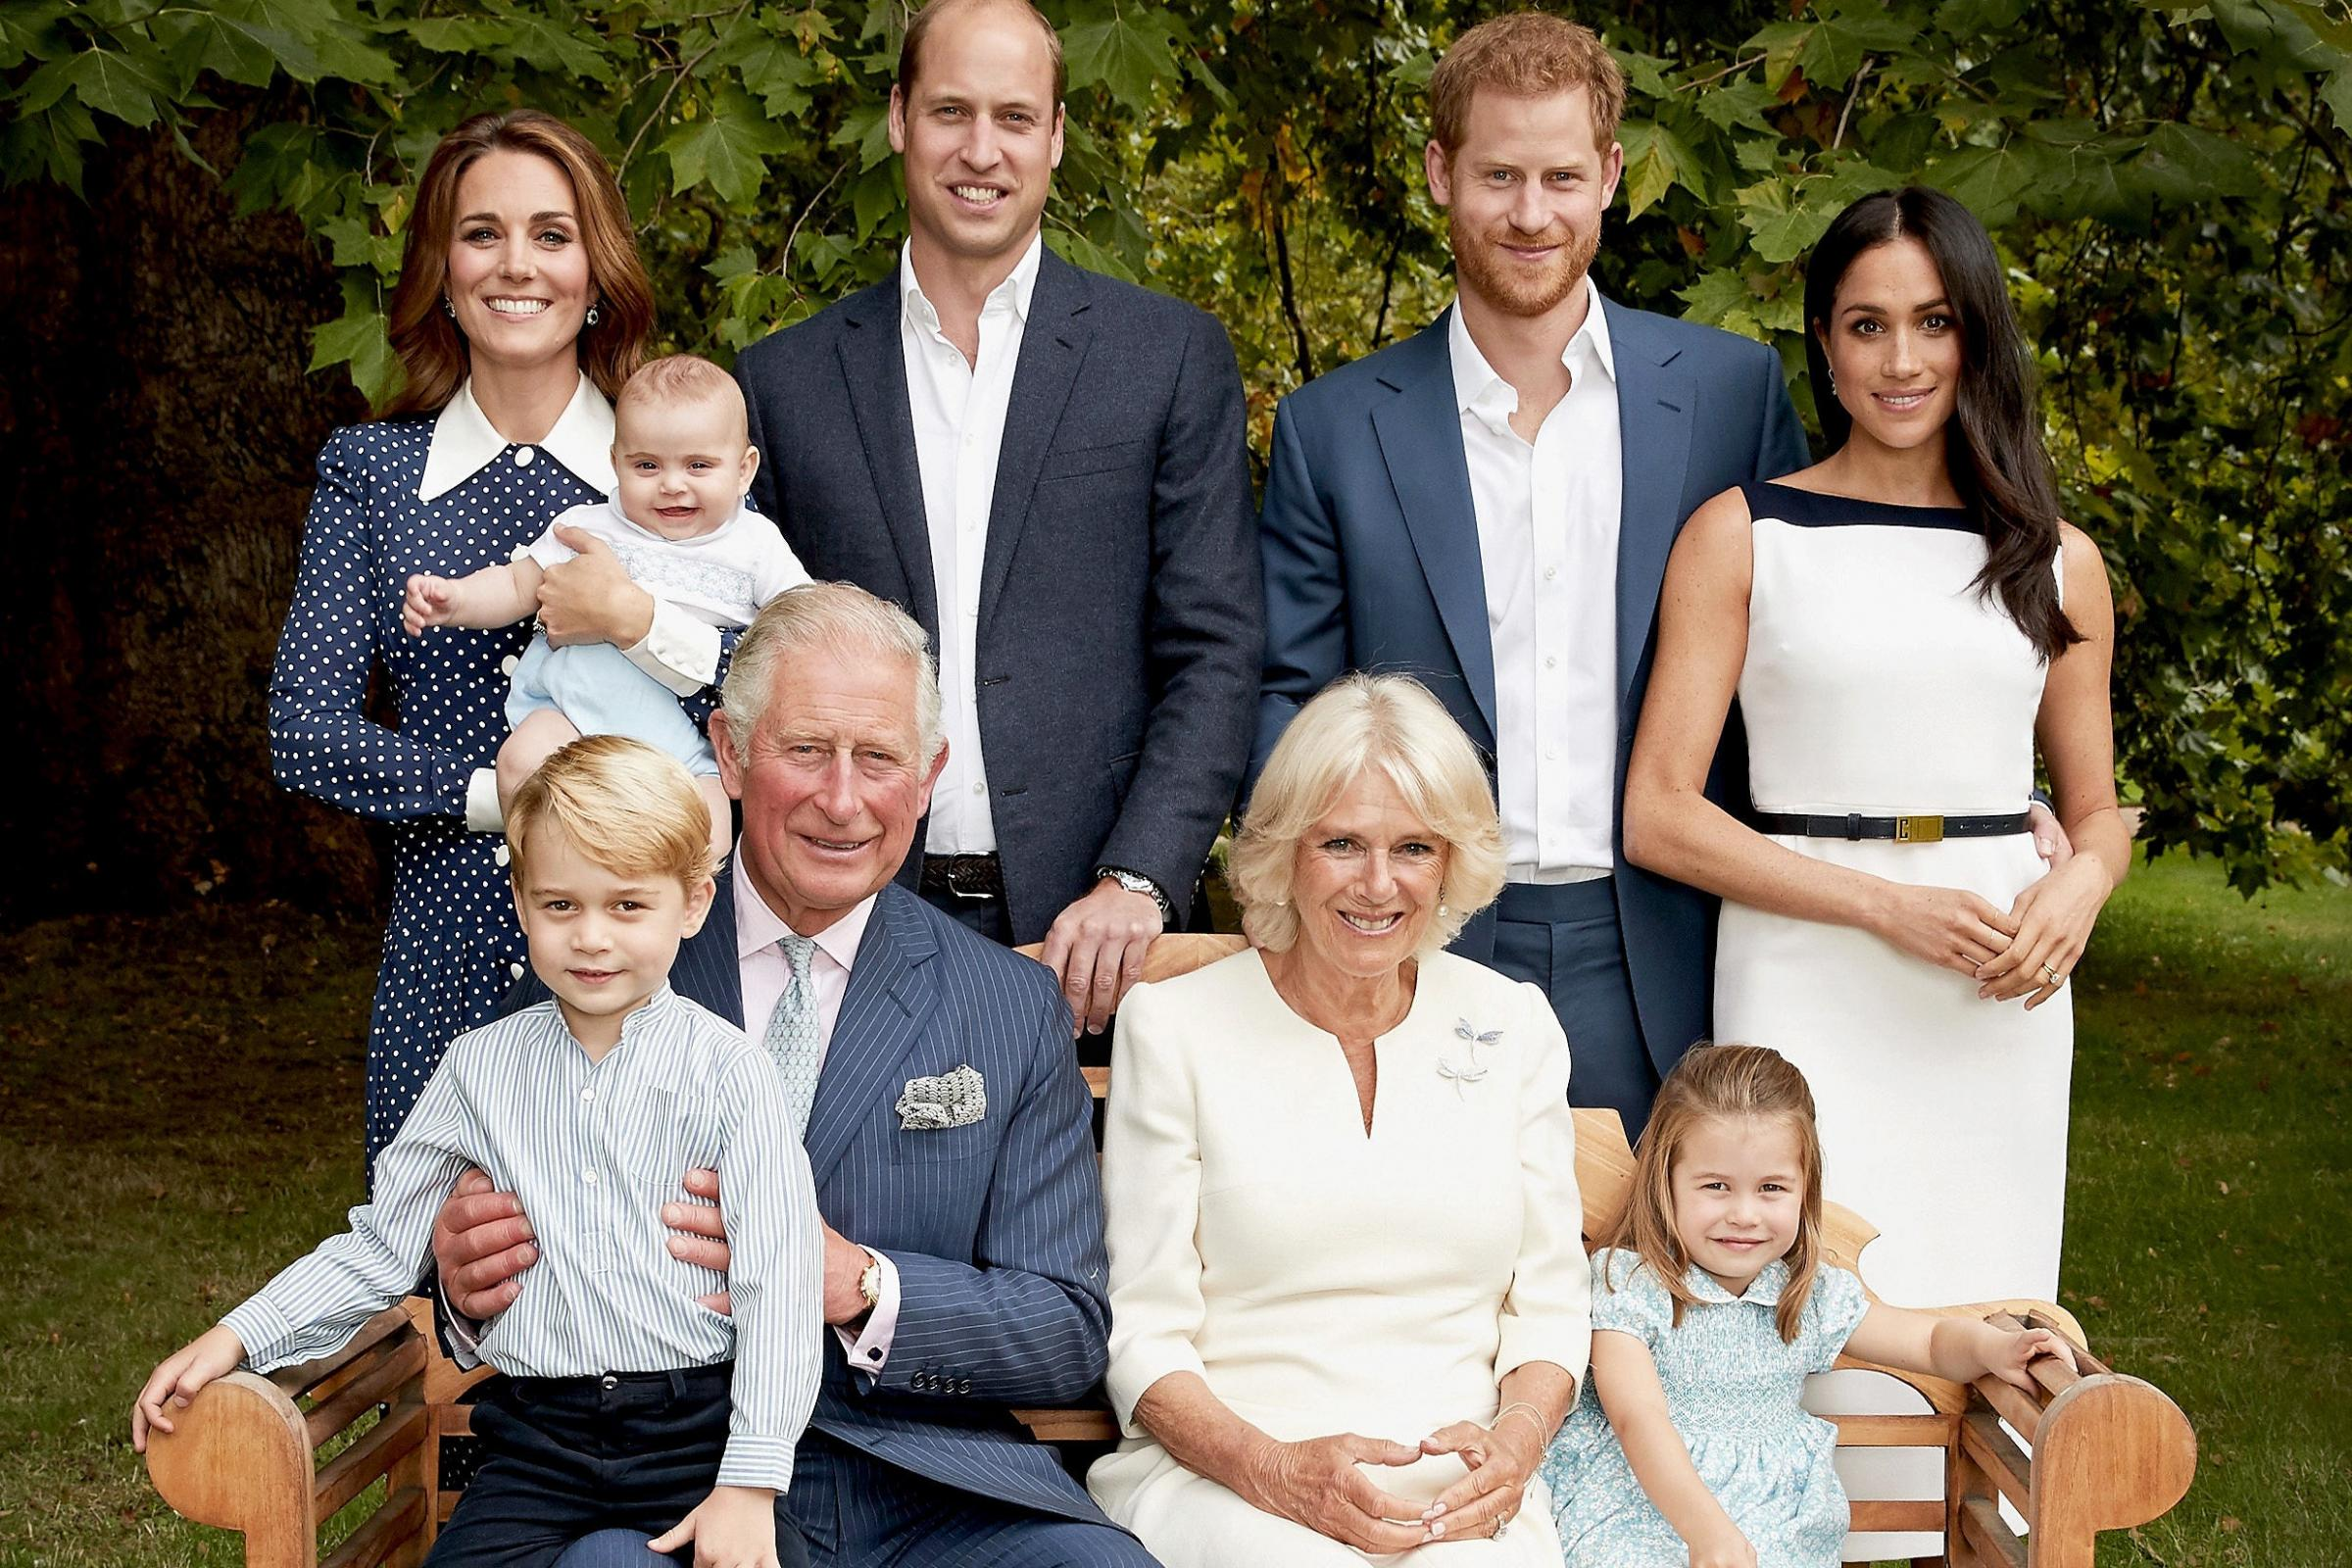 Charles enjoys giggles with grandson George as family photos mark 70th birthday